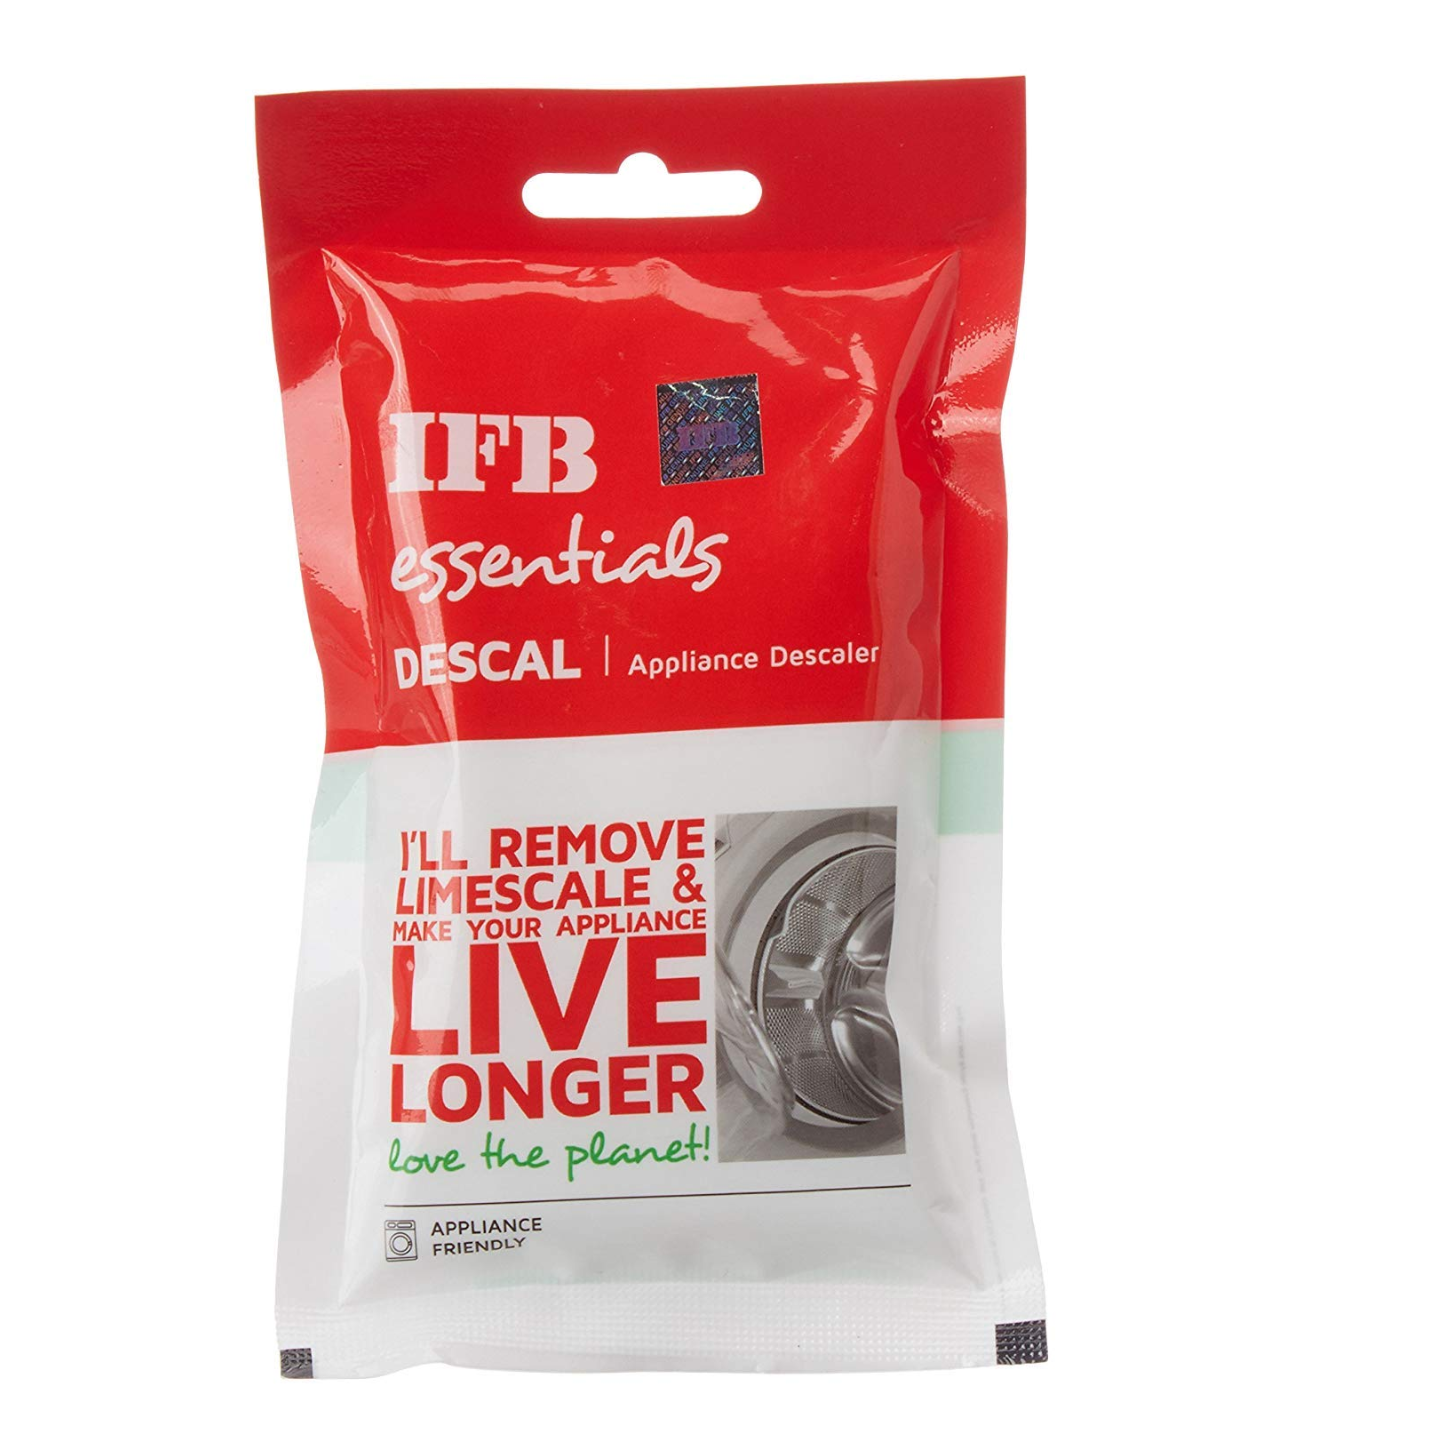 IFB Essentials Descaling powder for washing machine - Pack of 2